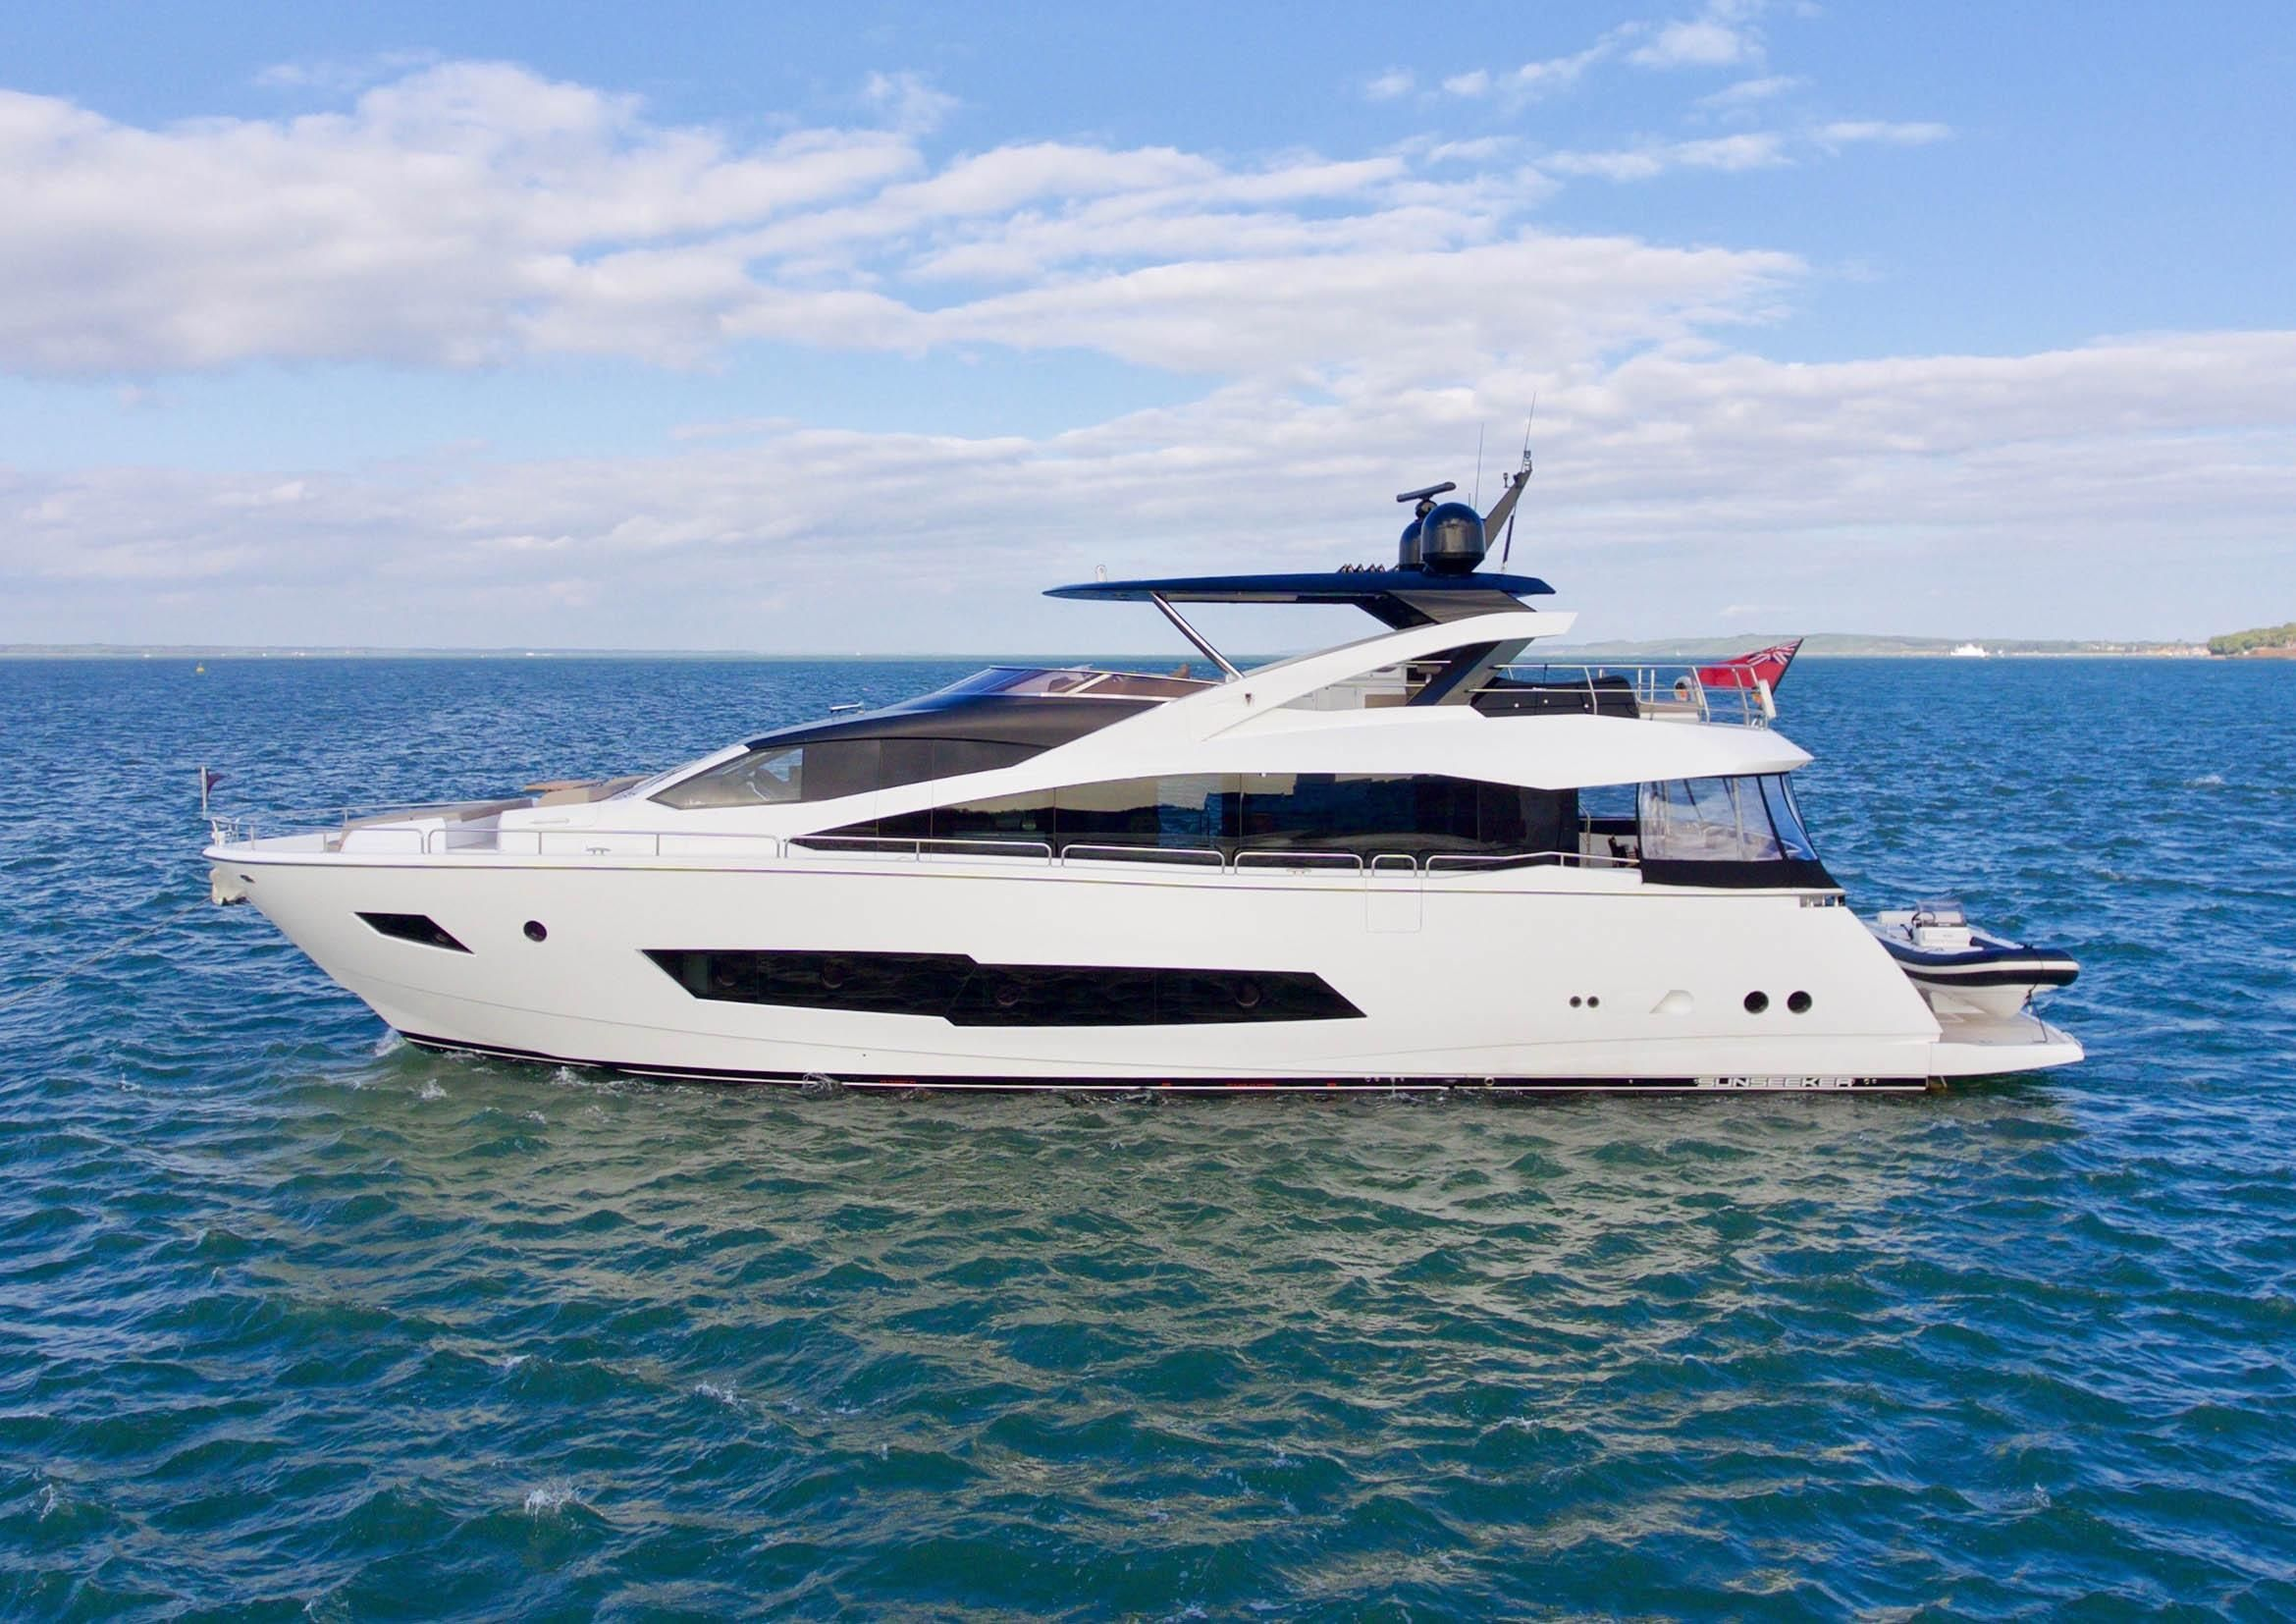 Mobile Porta Tv Con Audio Surround Integrato.2017 Sunseeker 86 Yacht Power New And Used Boats For Sale